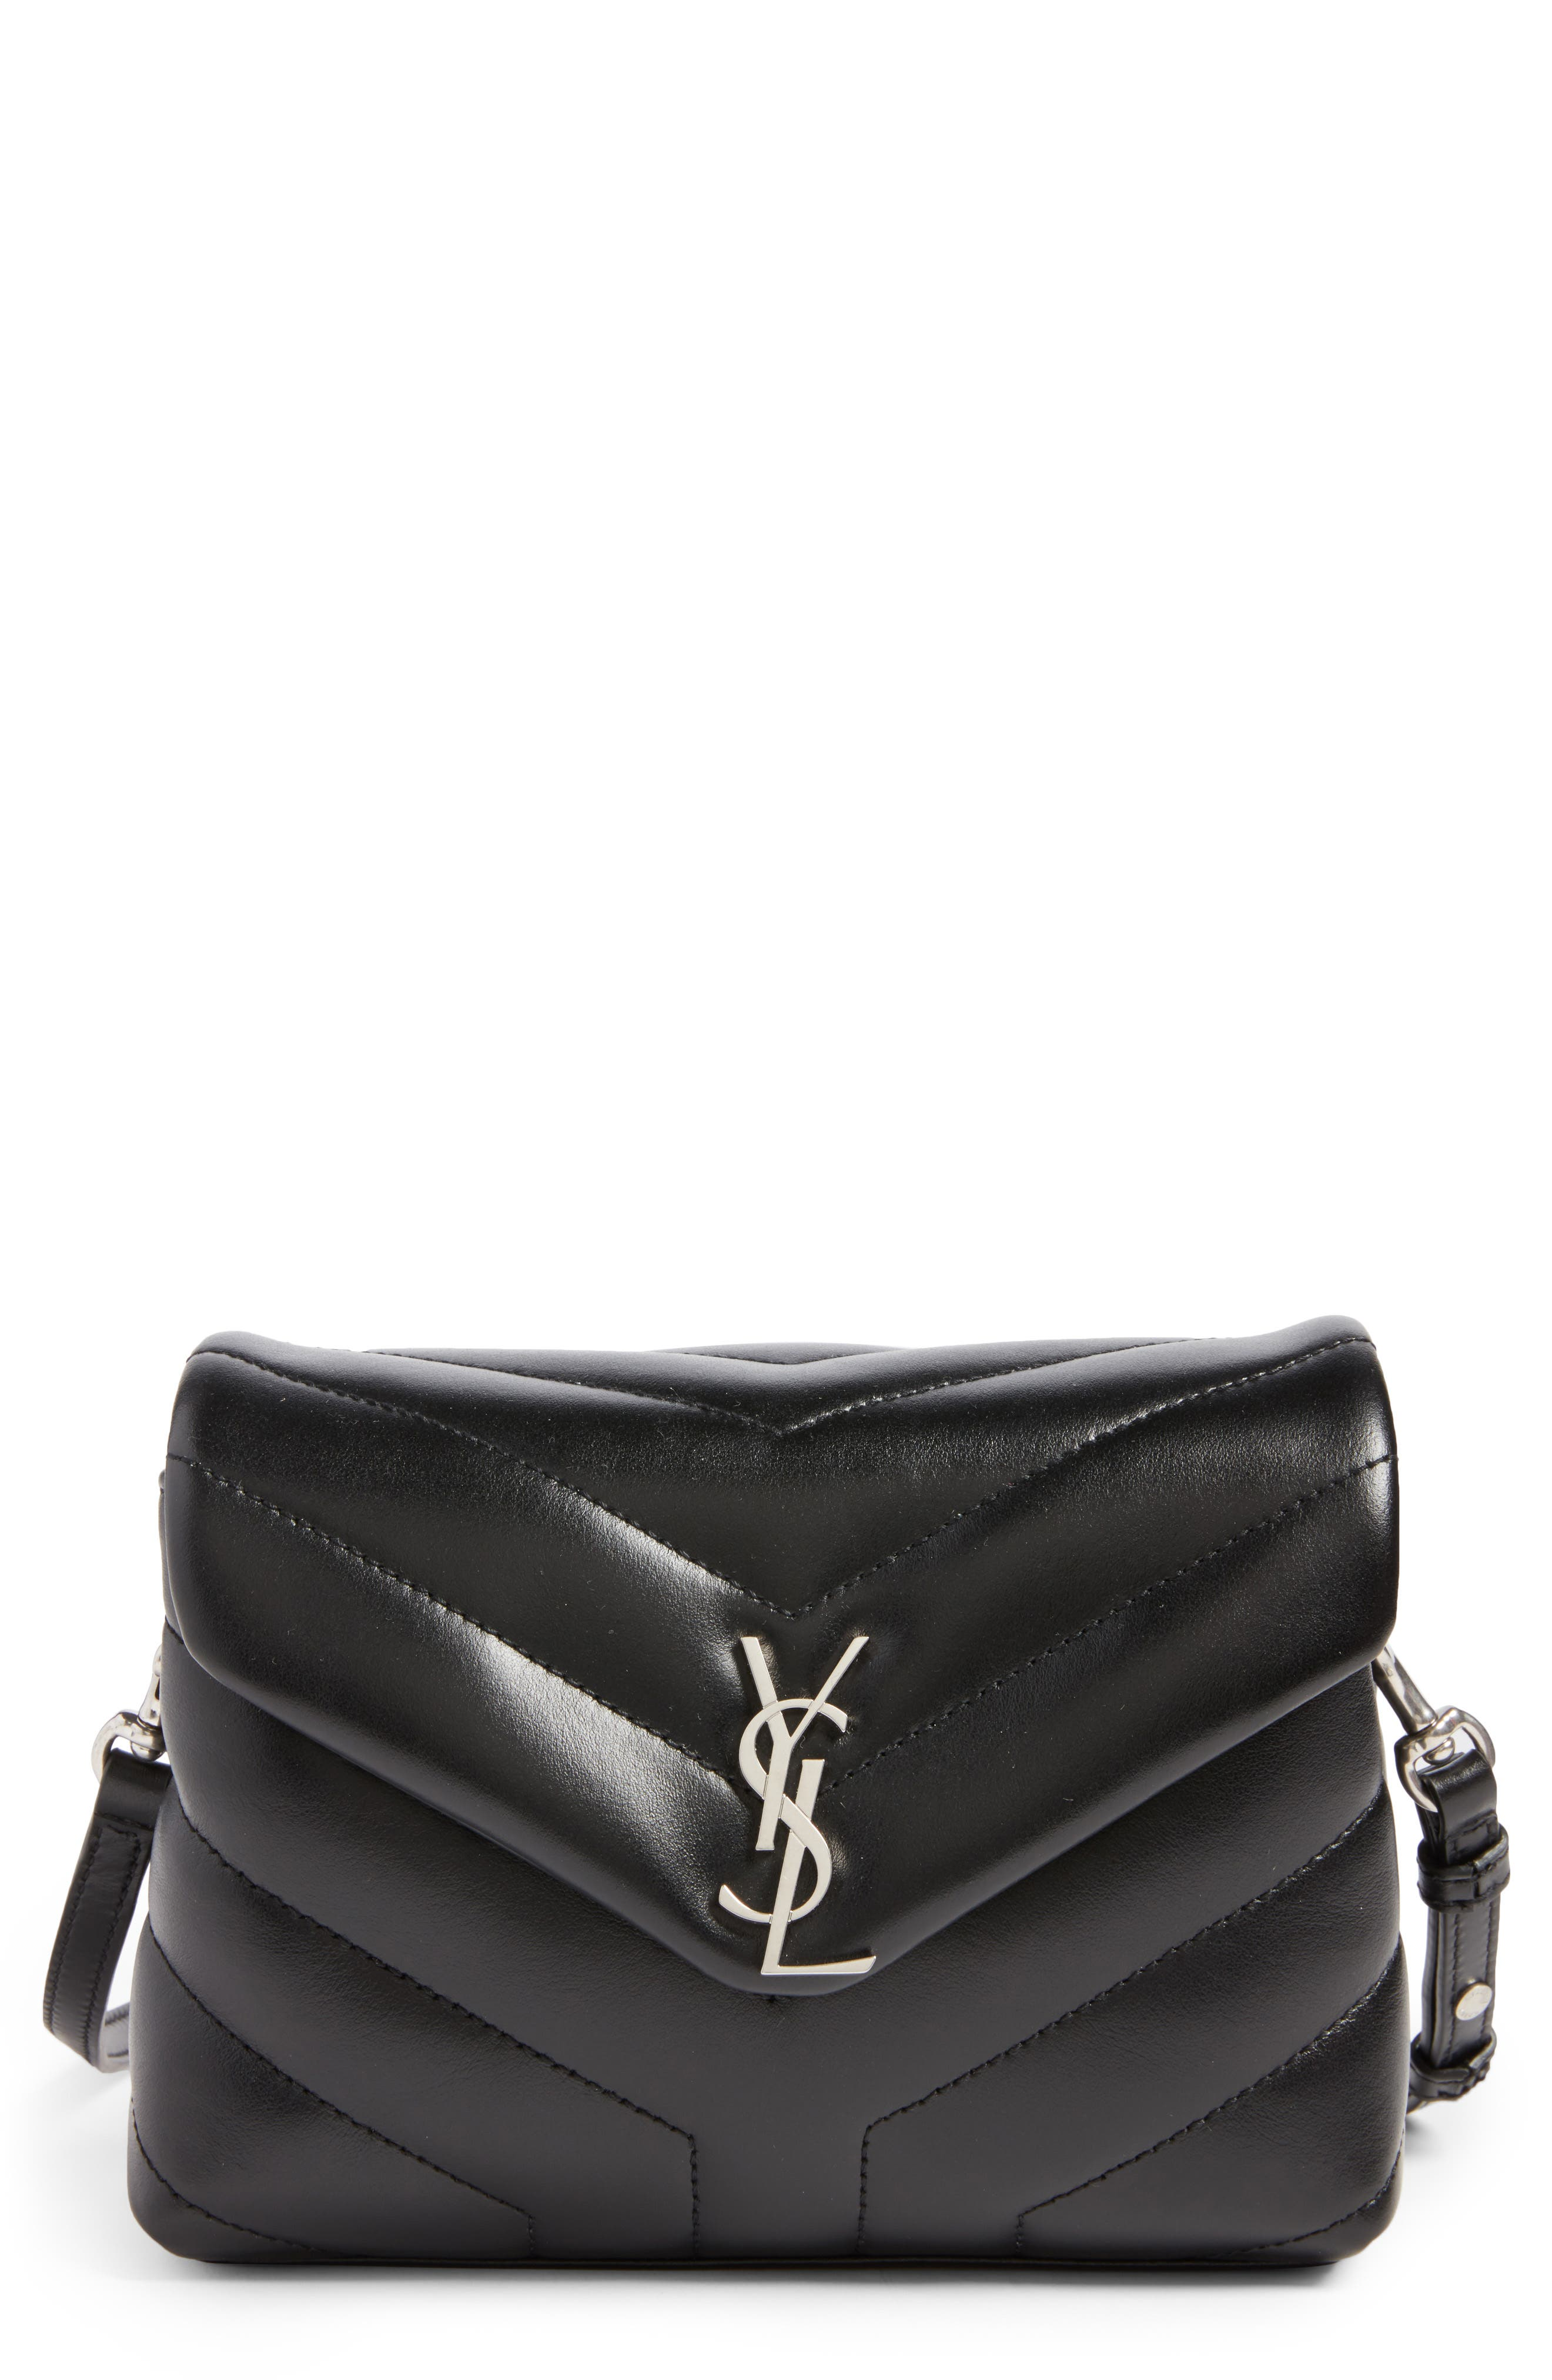 Saint Laurent Toy LouLou Calfskin Leather Crossbody Bag